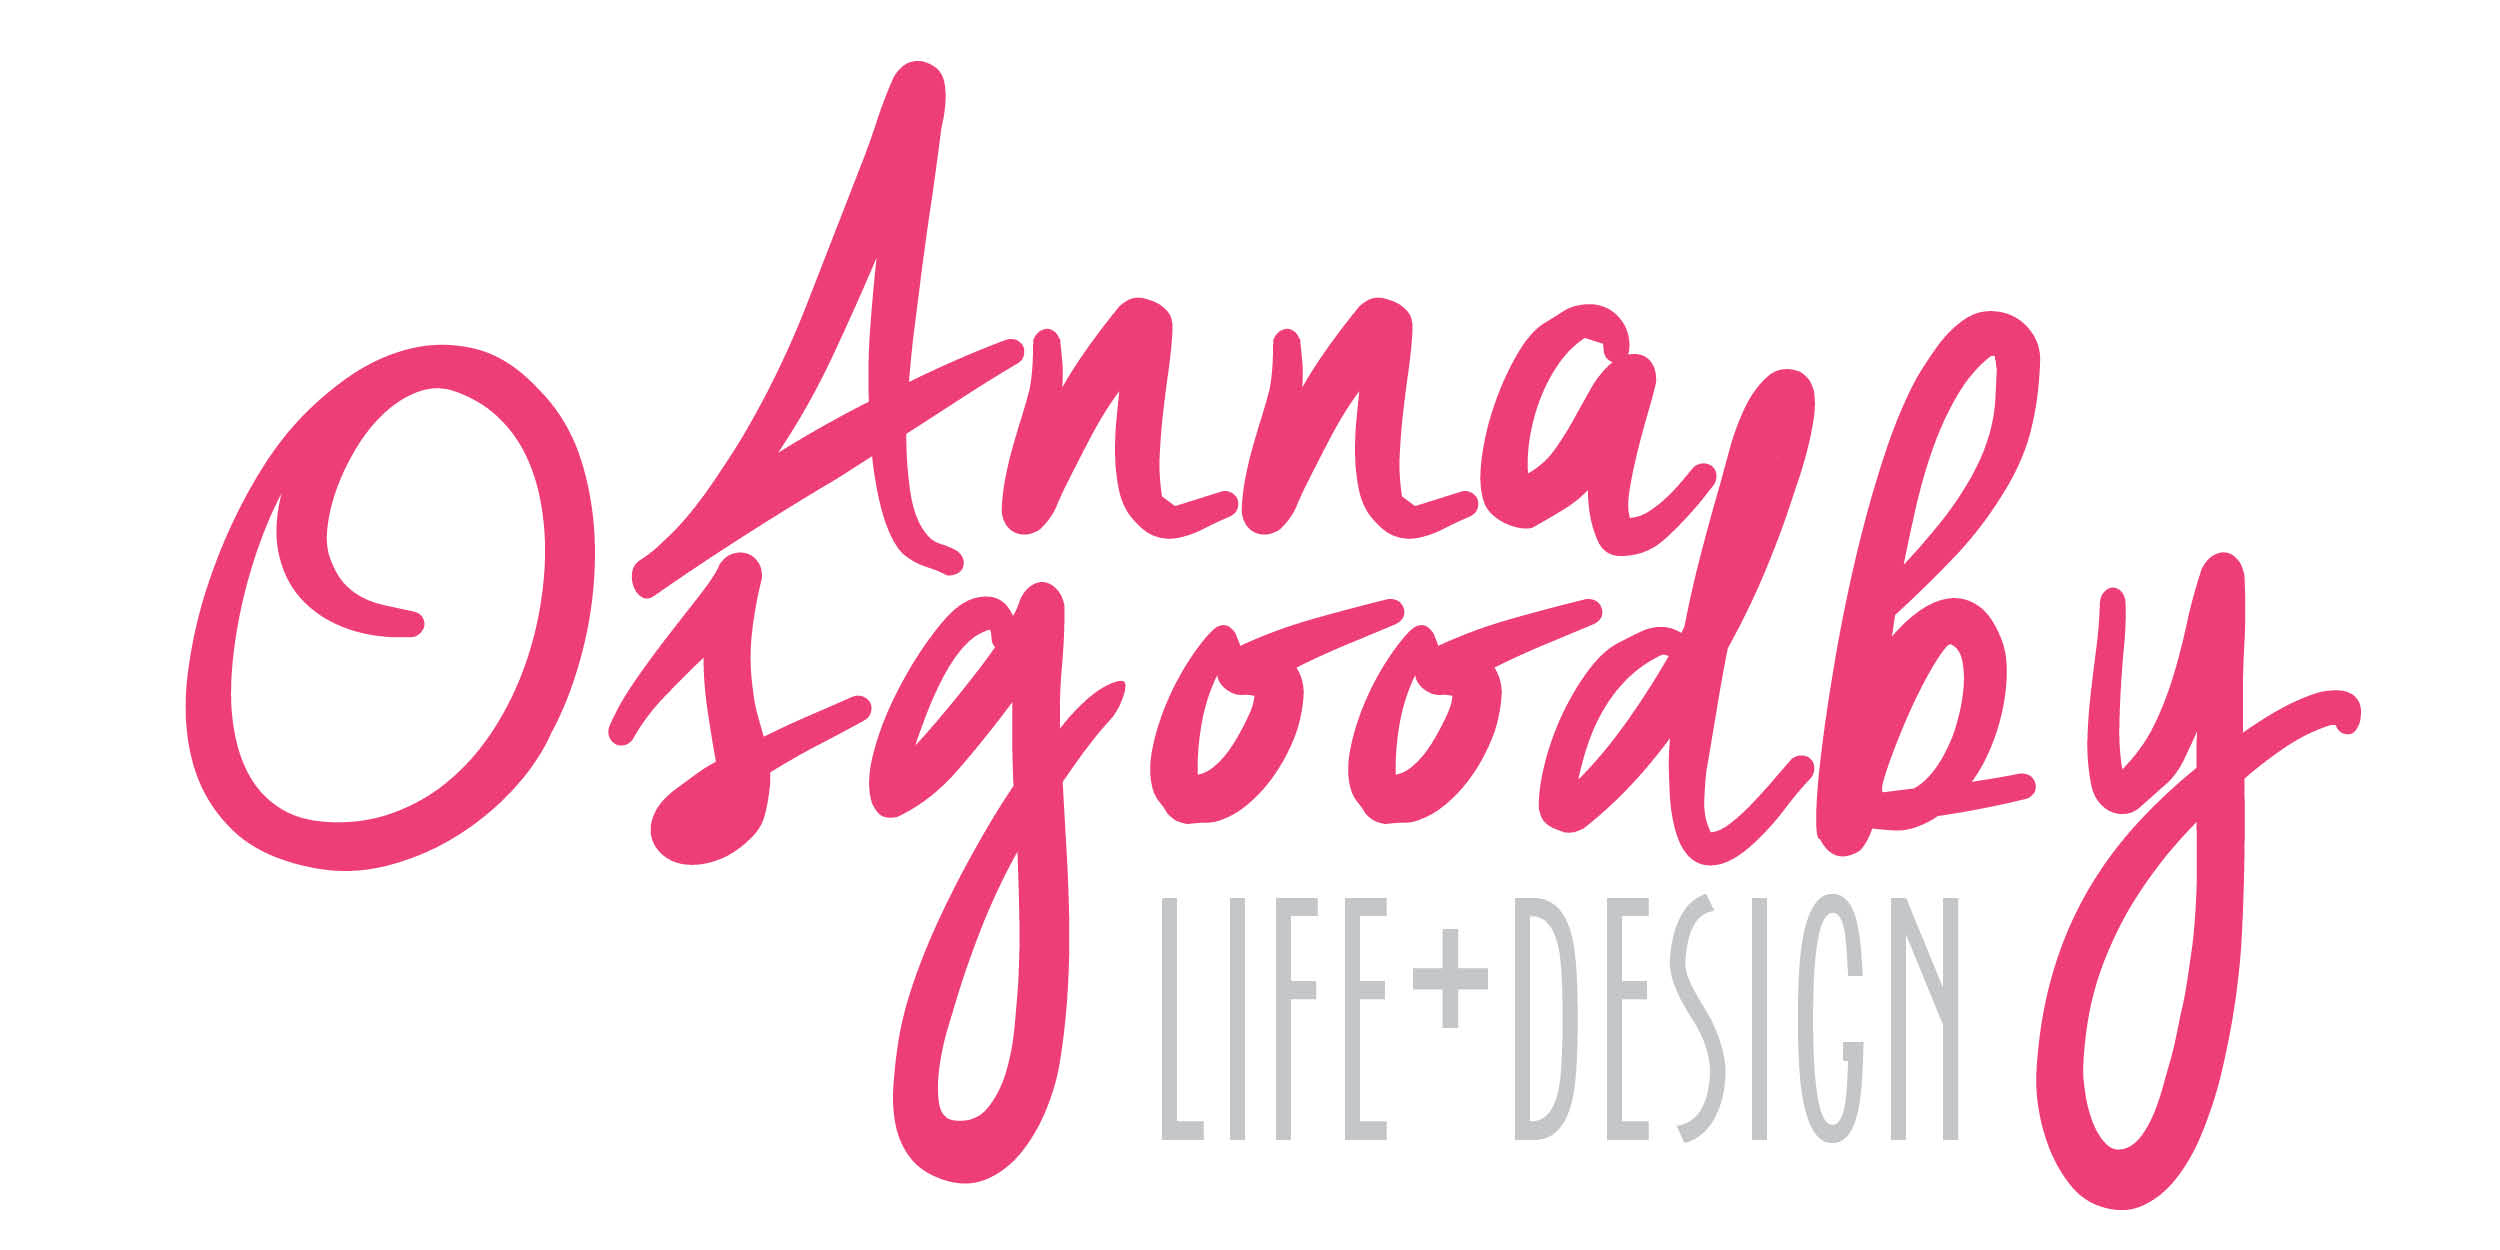 Anna Osgoodby Life + Design | NYC Lifestyle Blog